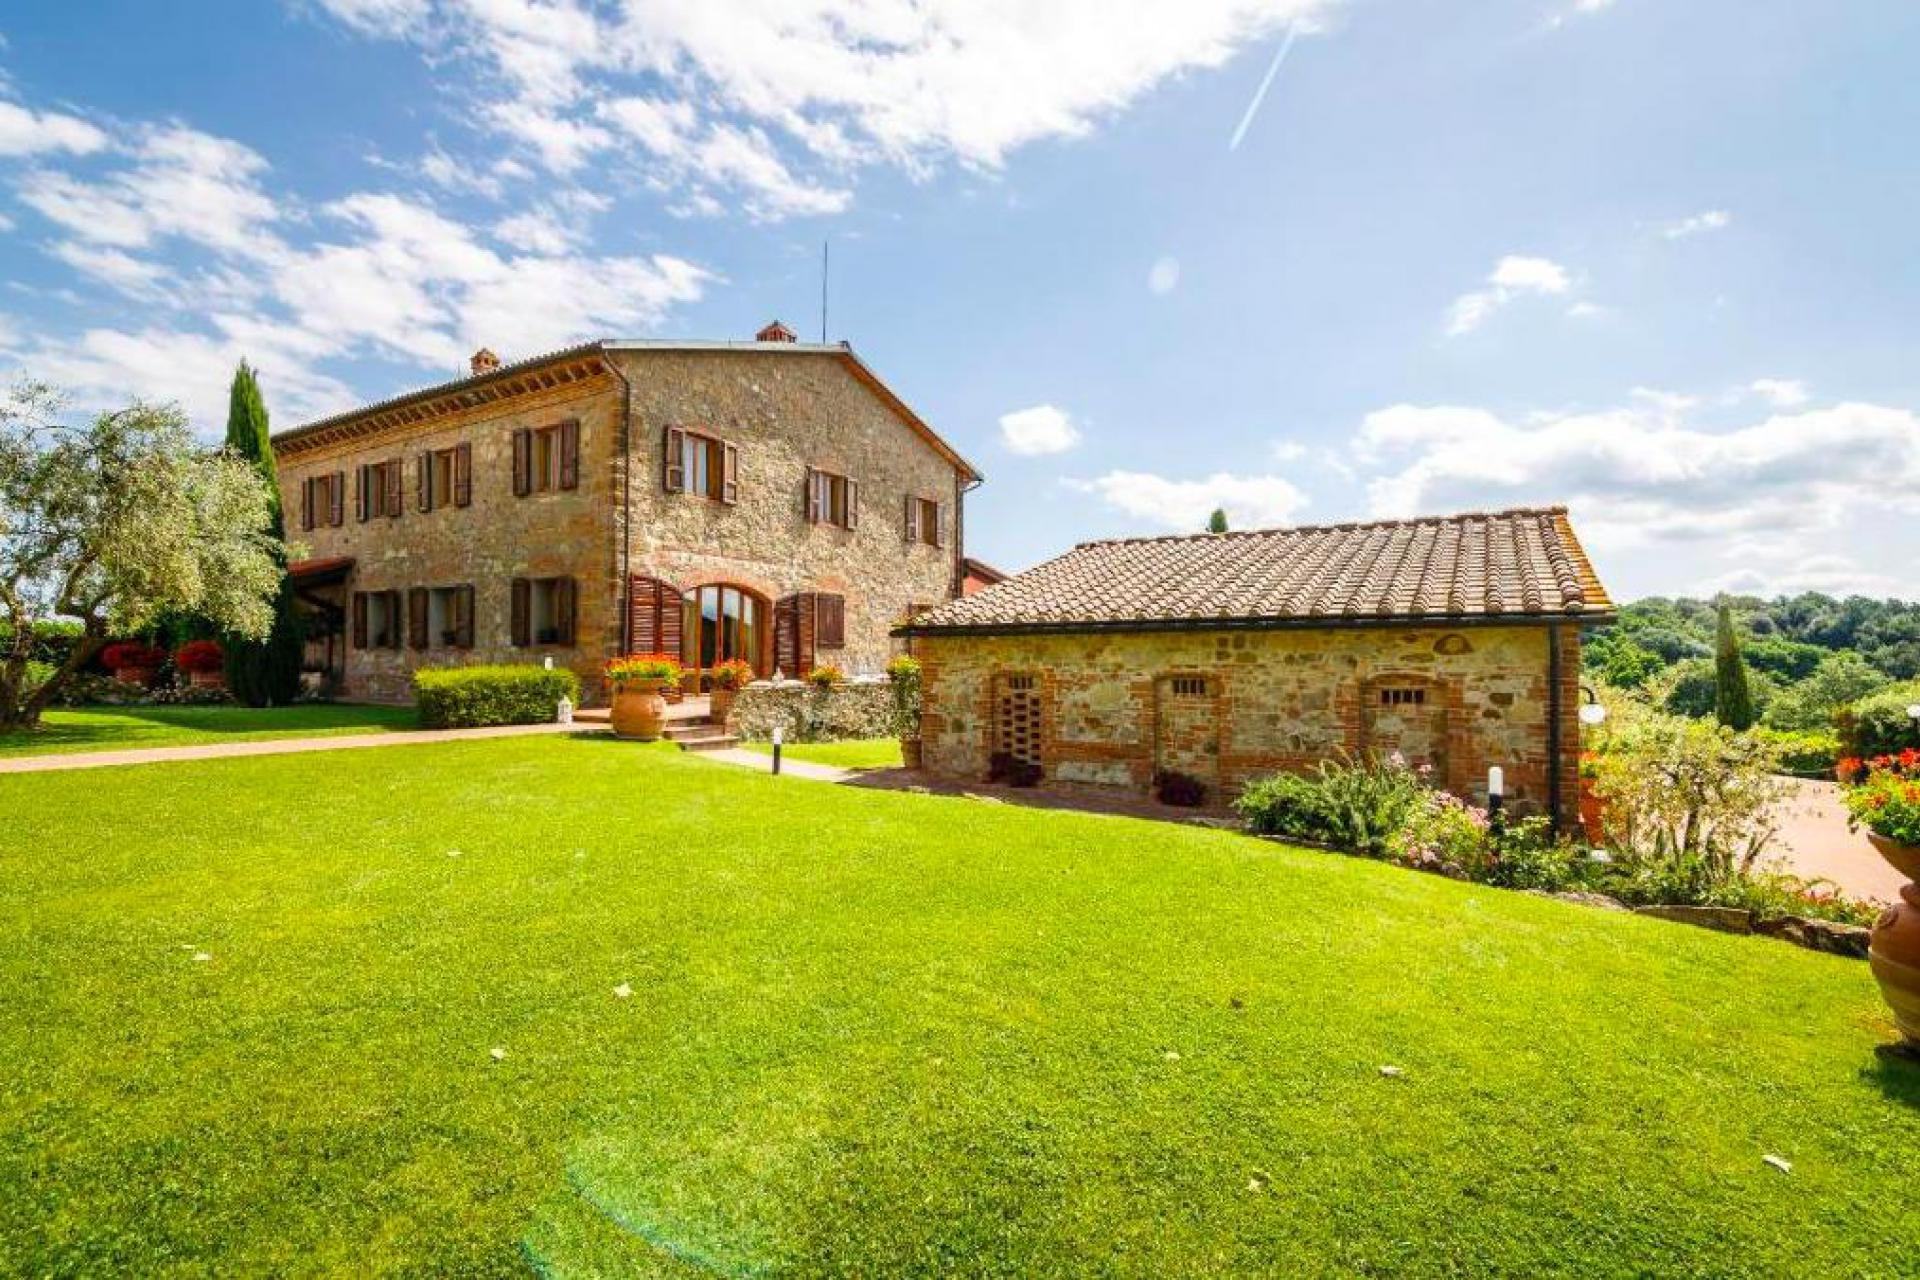 Agriturismo Tuscany Large agriturismo in Tuscany with stunning views